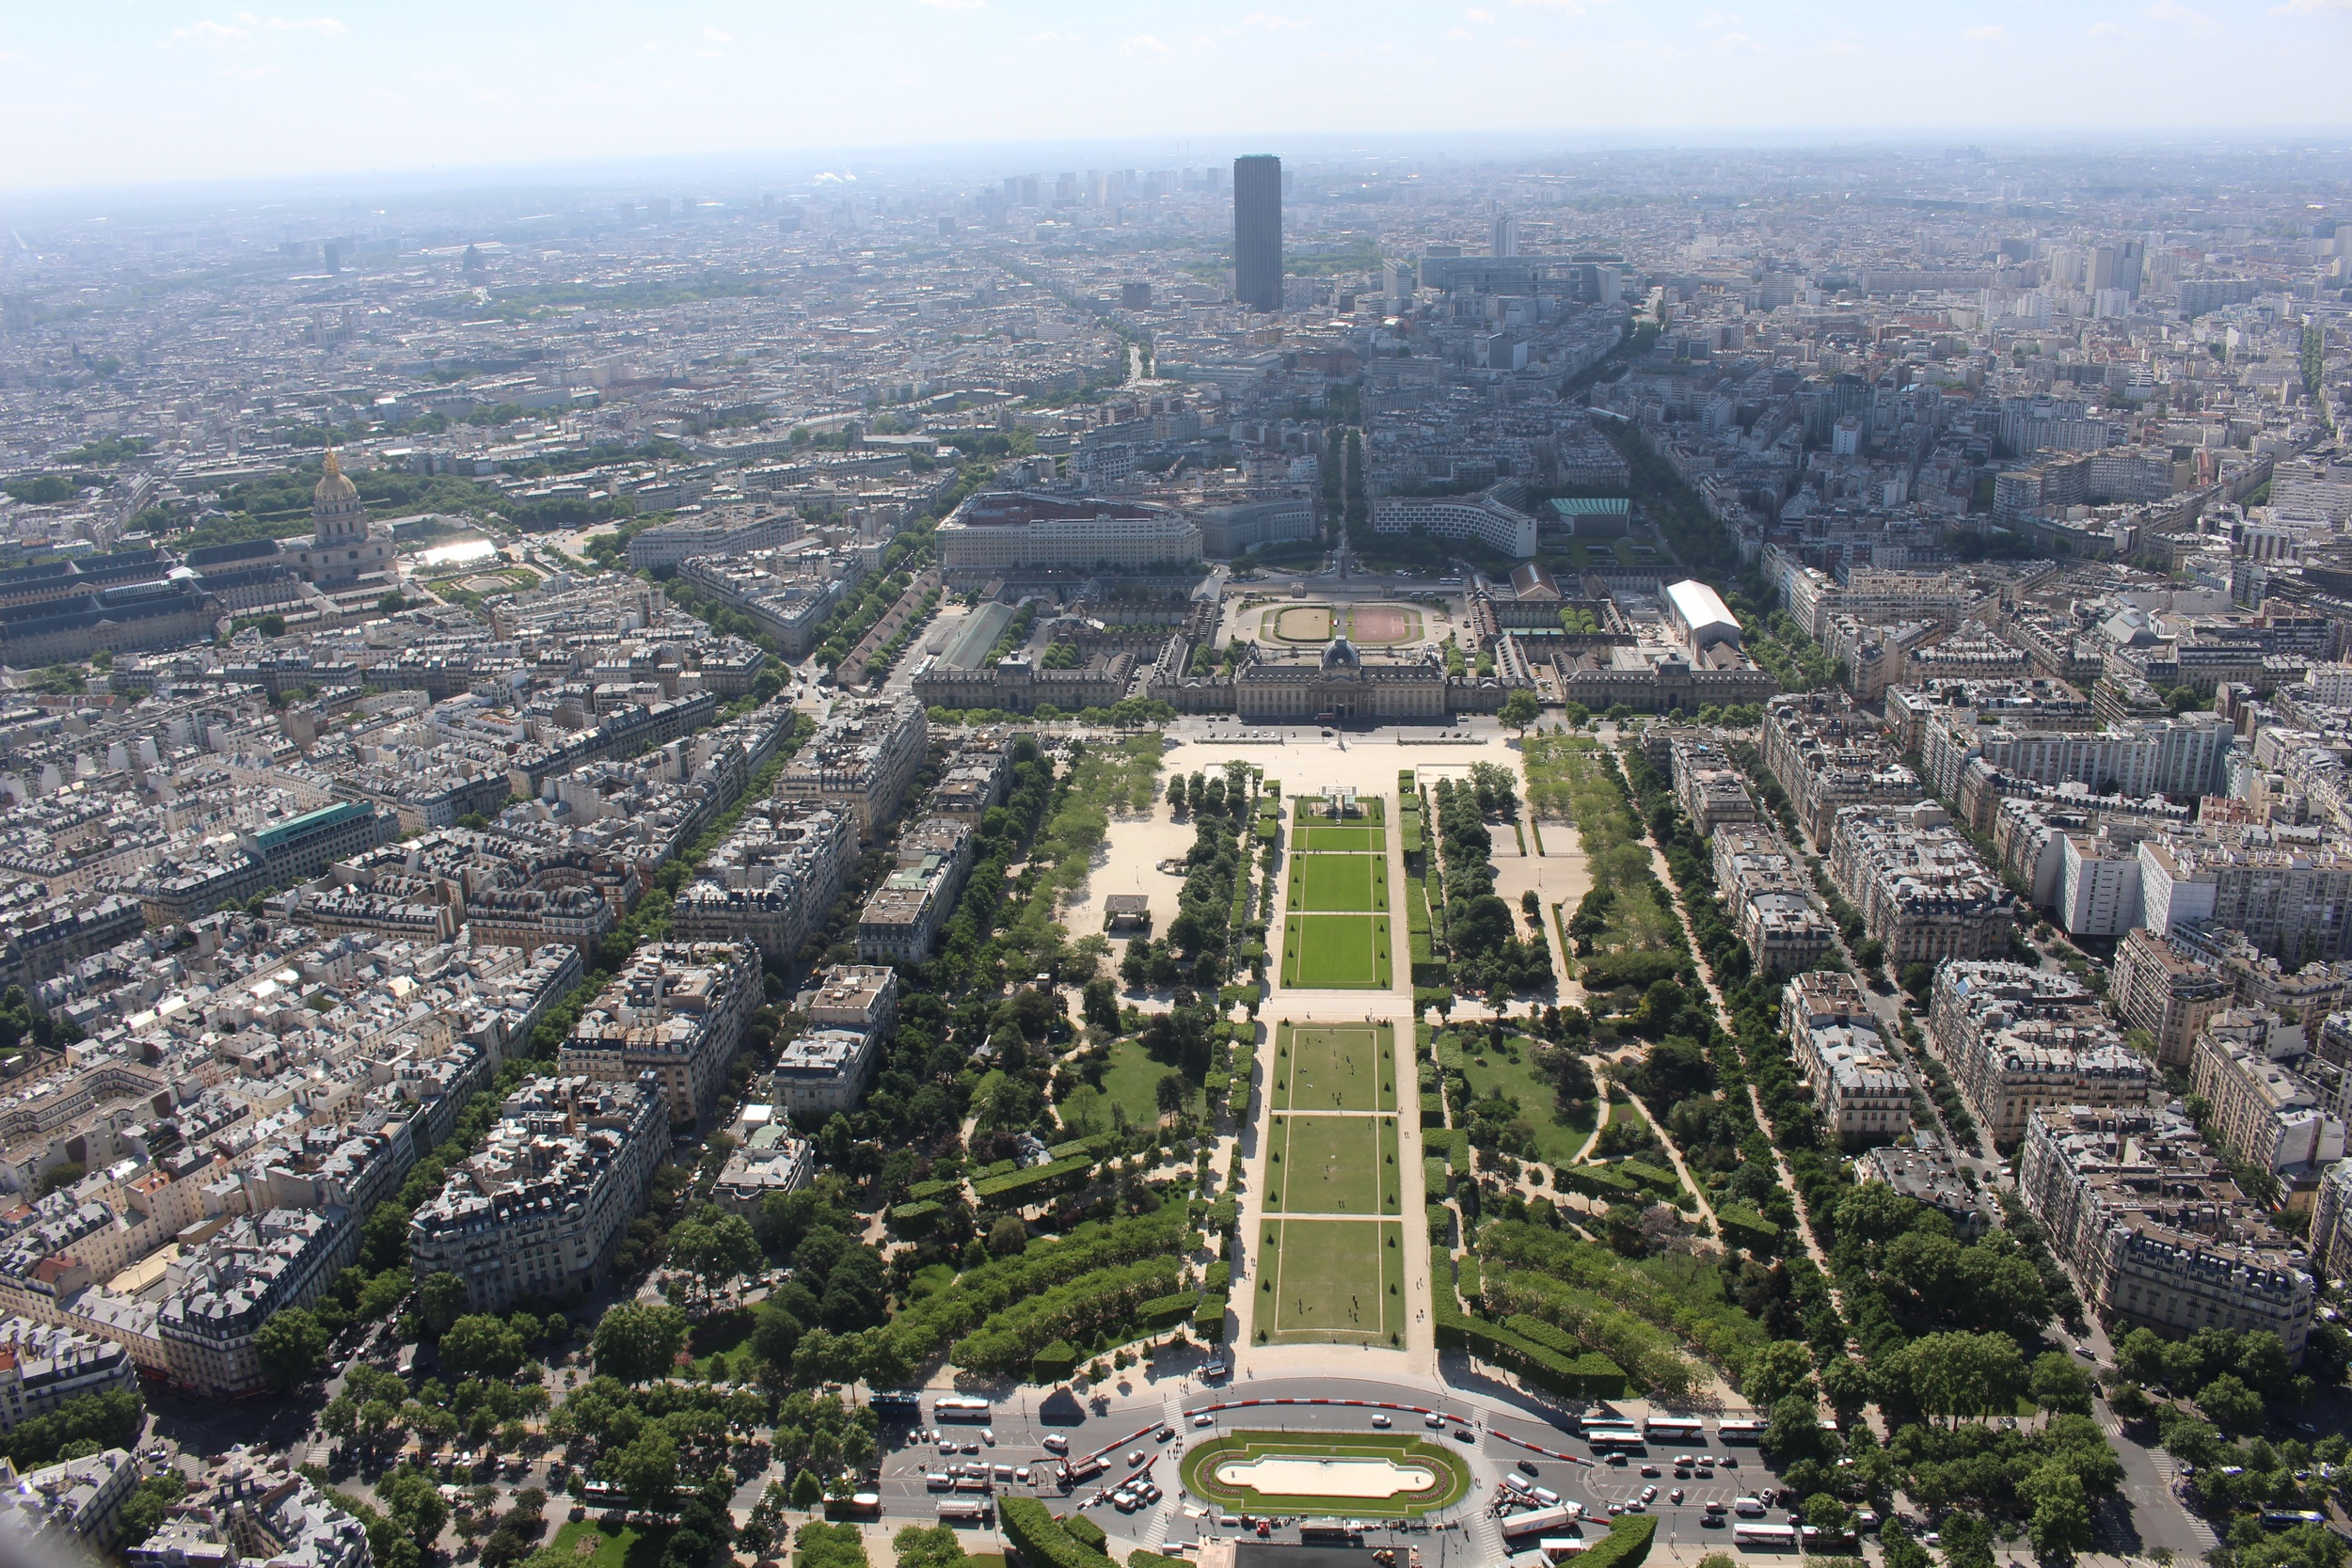 View from the top of the Eiffel